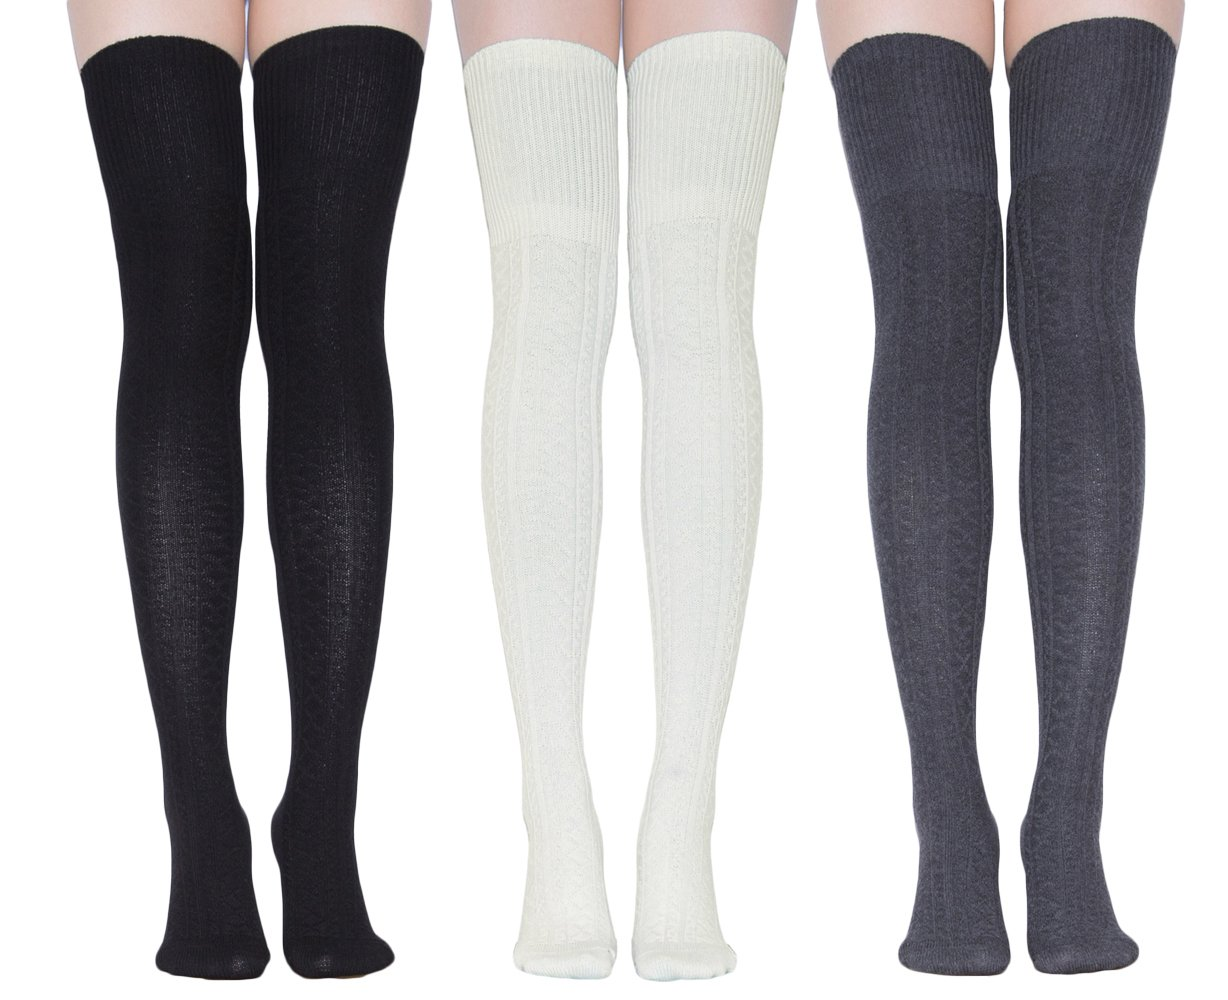 TooPhoto Women Cotton Over Knee Thigh High Socks Stockings Leg Warmmer Cosplay 3 pairs A-Black & White & Deep grey